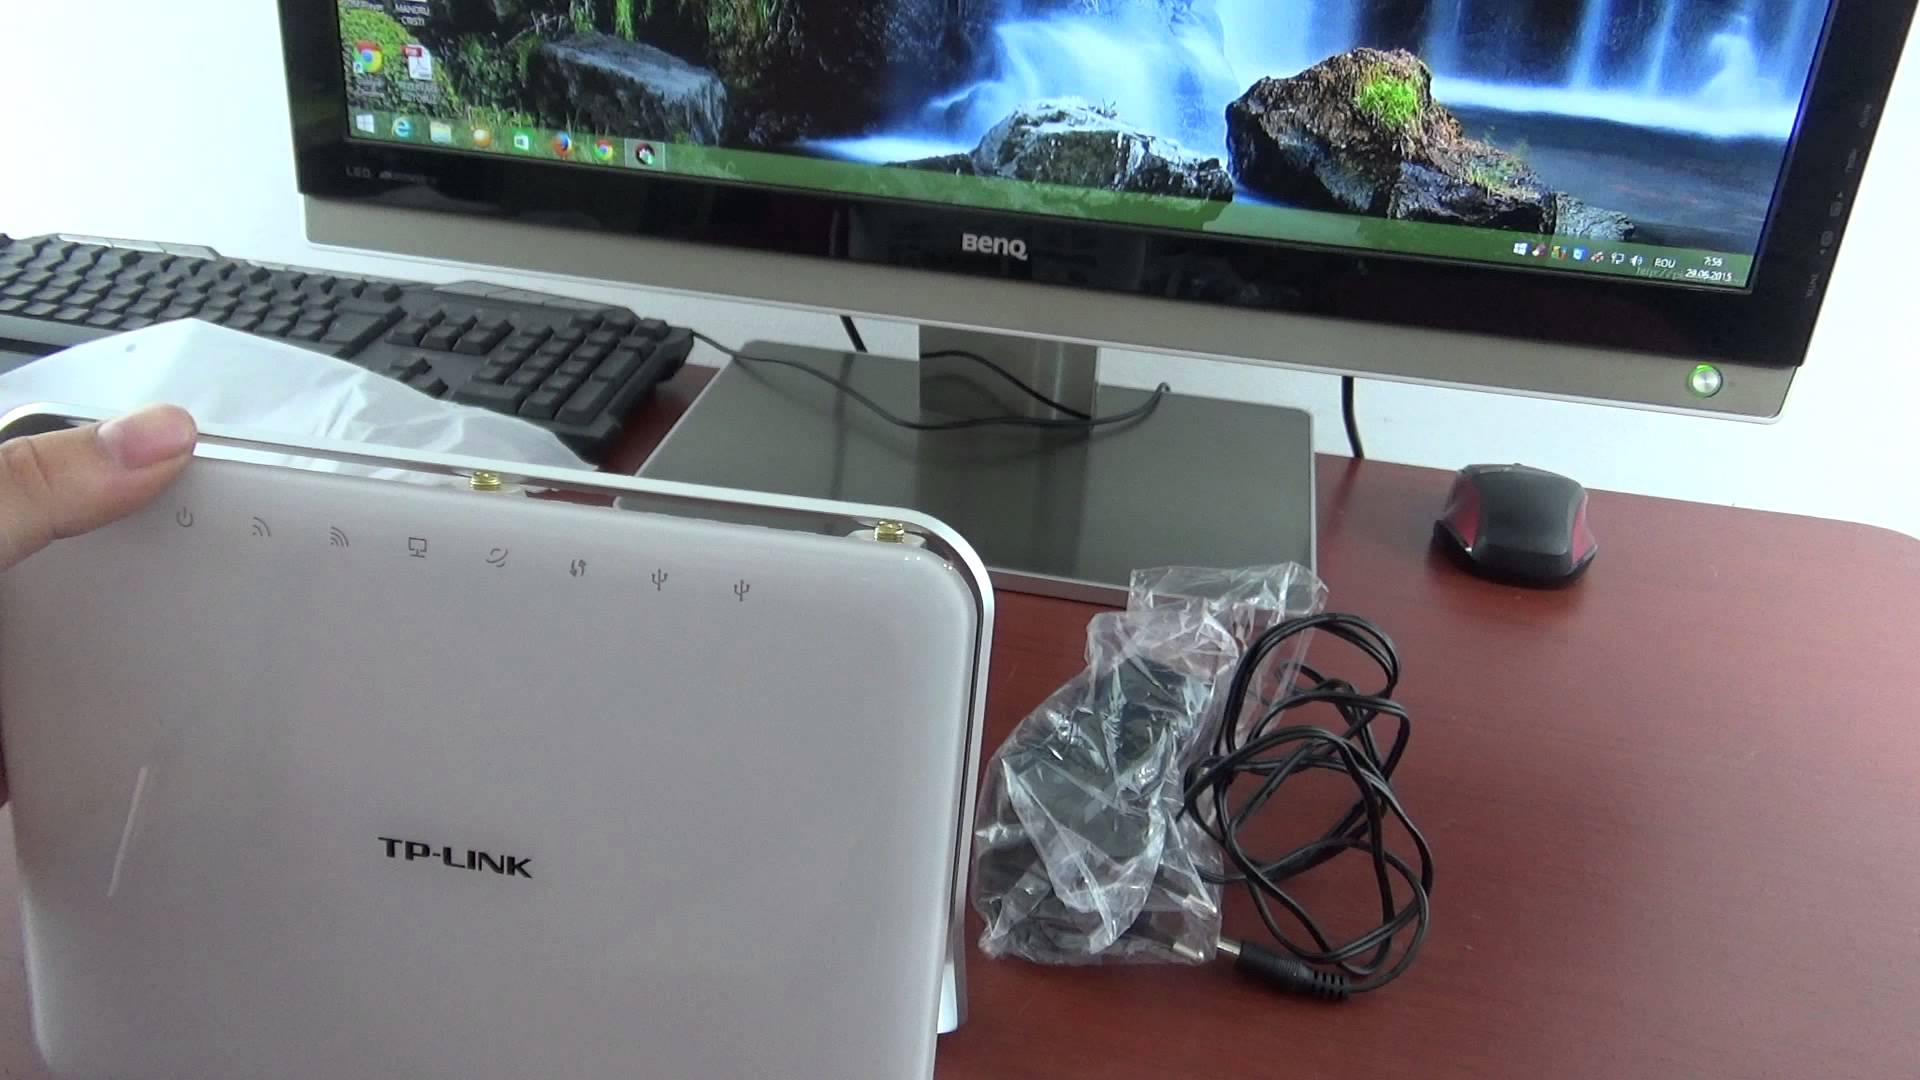 Unboxing Tp-Link AC1900 Wireless Dual band Gigabit Router